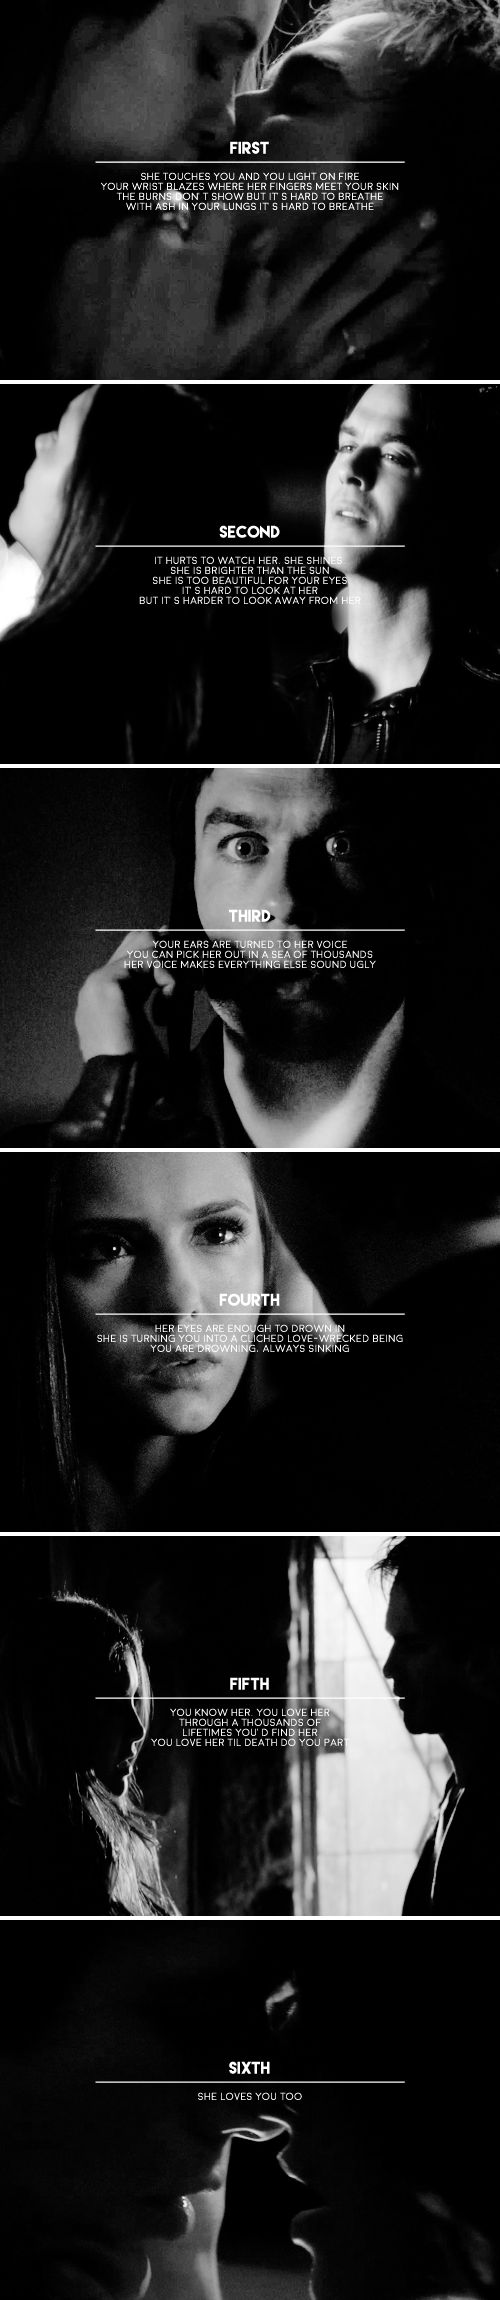 OH MY GOD WHO EVER MADE THIS U ARE HEAVEN SENT OHMYGOD I GOT THE FEELS, DELENA FEELS OF SHIESHAKEBJS